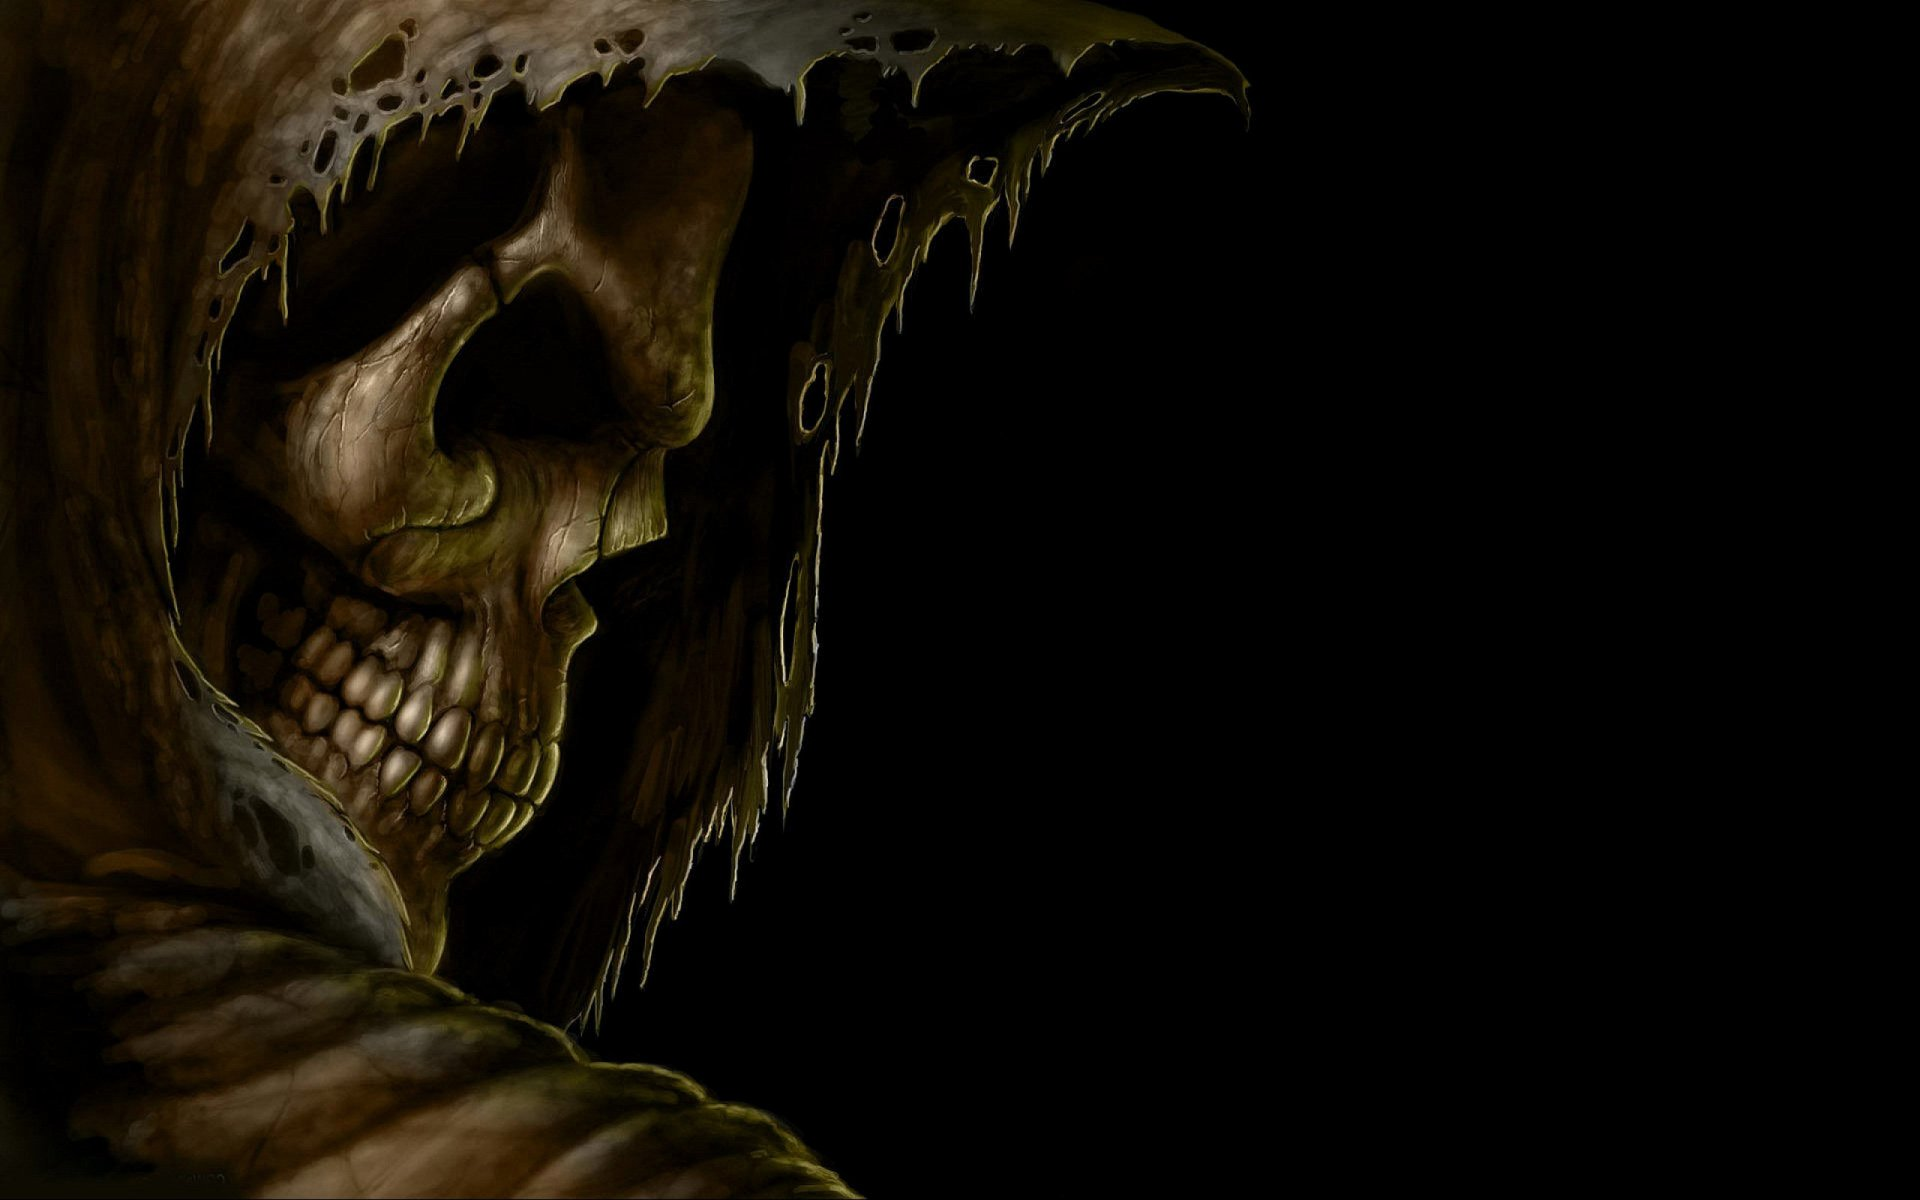 The reaper hd wallpaper background image 3560x2225 - Reaper wallpaper ...